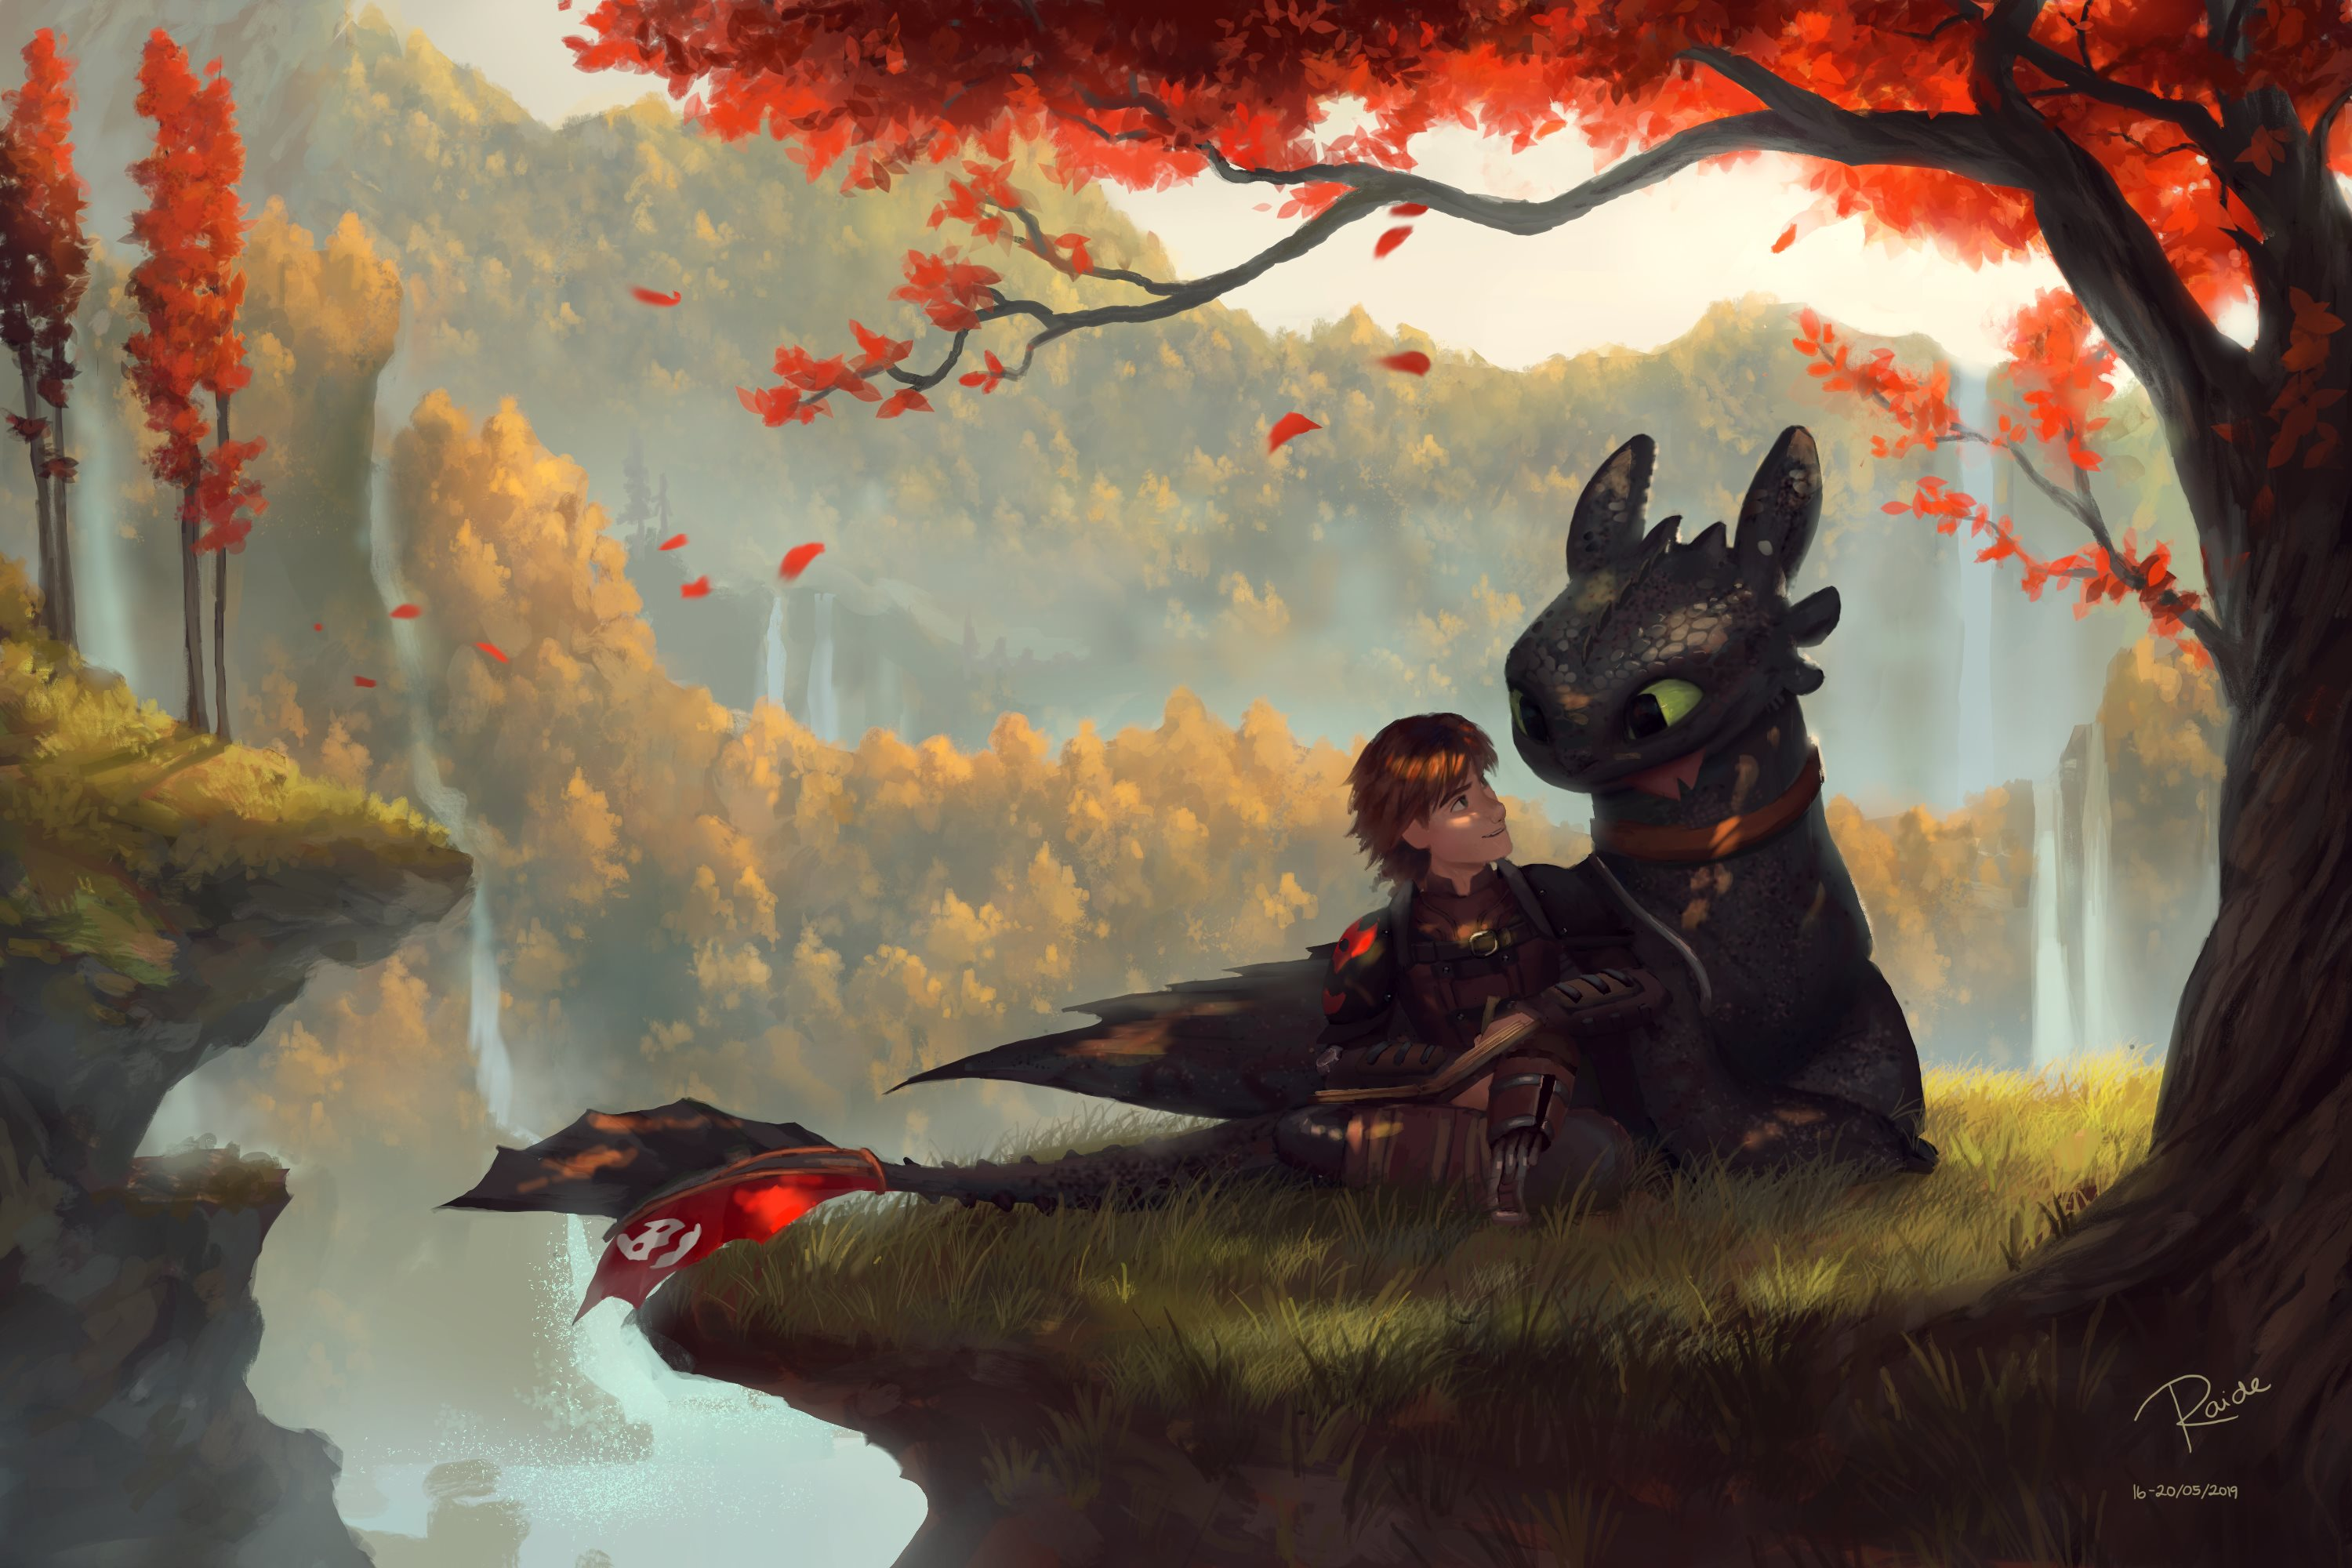 How To Train Your Dragon Hd Wallpaper Background Image